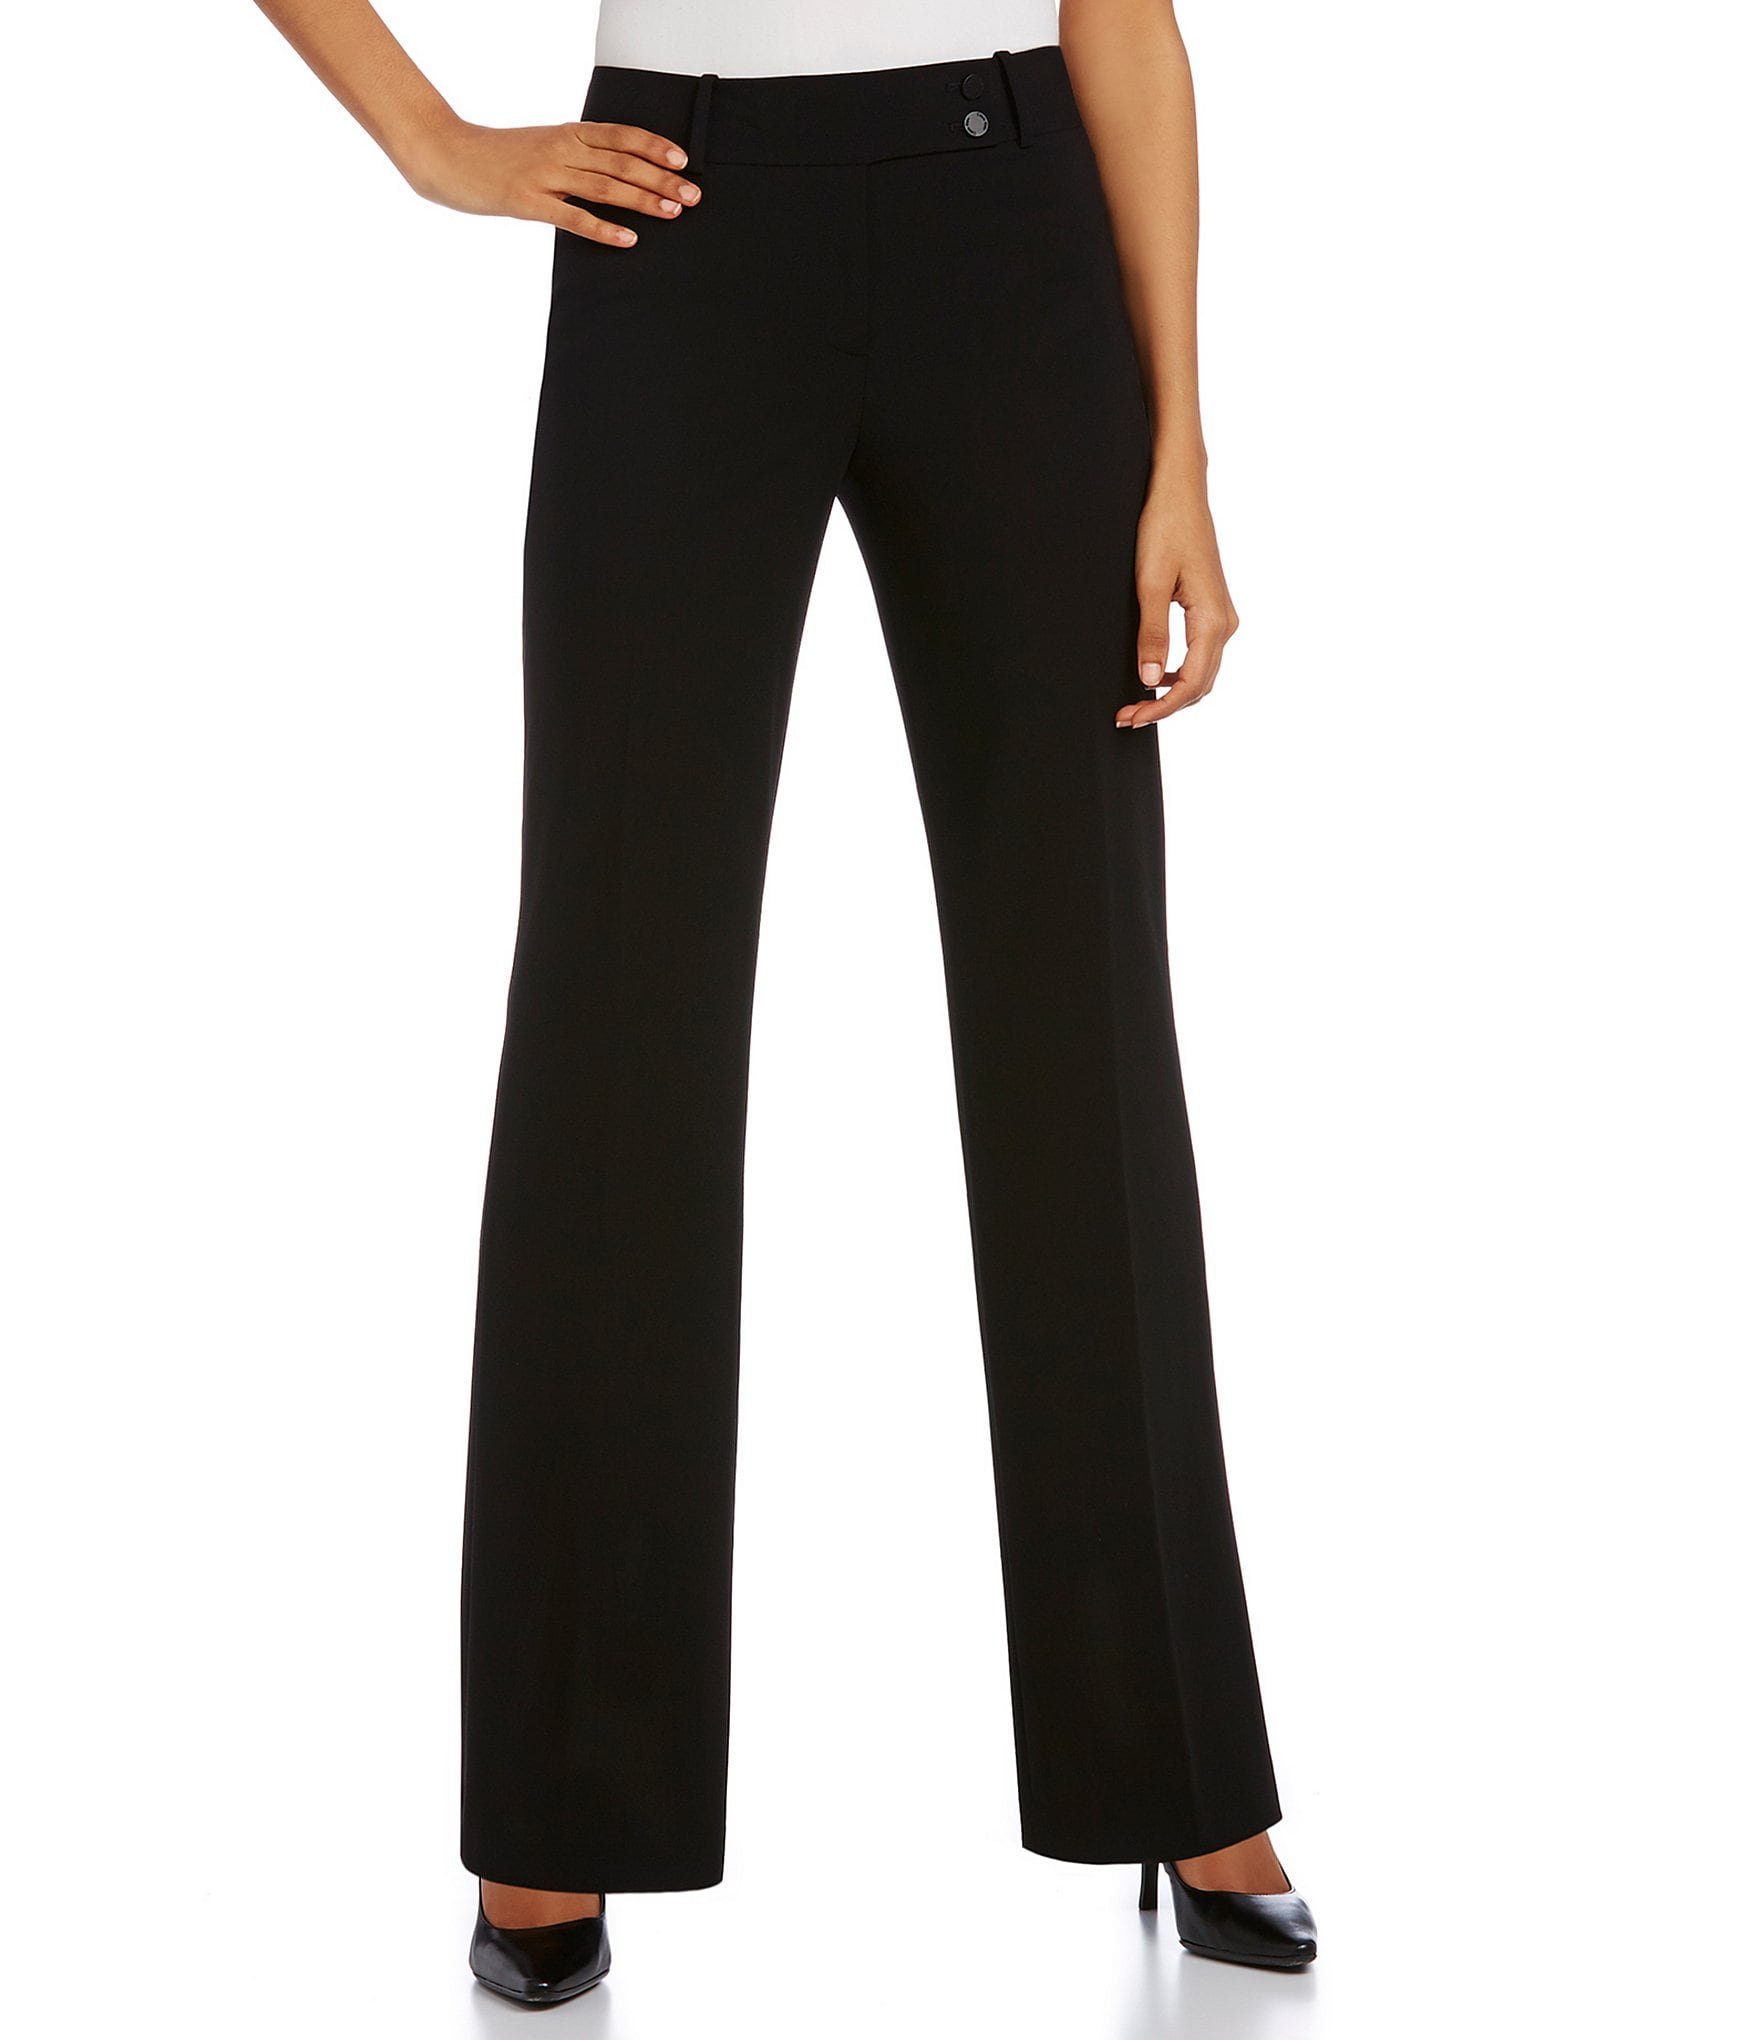 4039e1d0bf7 Black Petite Casual   Dress Pants